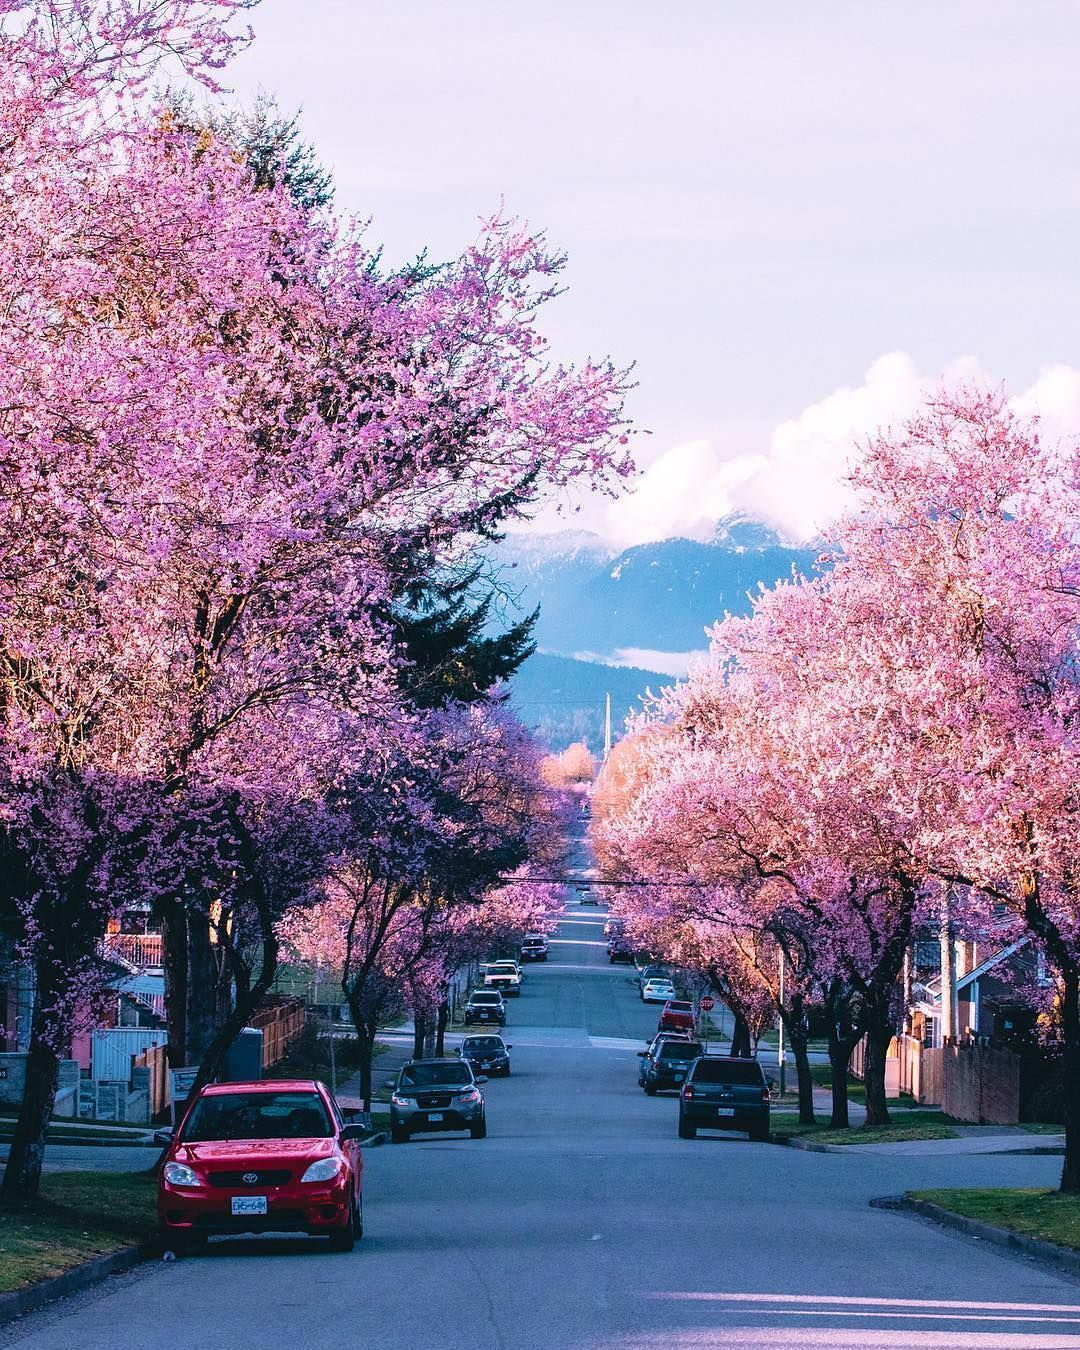 Narcity Canada On Instagram Can T Beat The Sunshine And Cherry Blossoms In Vancouver Pictures By Sta Cherry Blossom Festival Vancouver Instagram